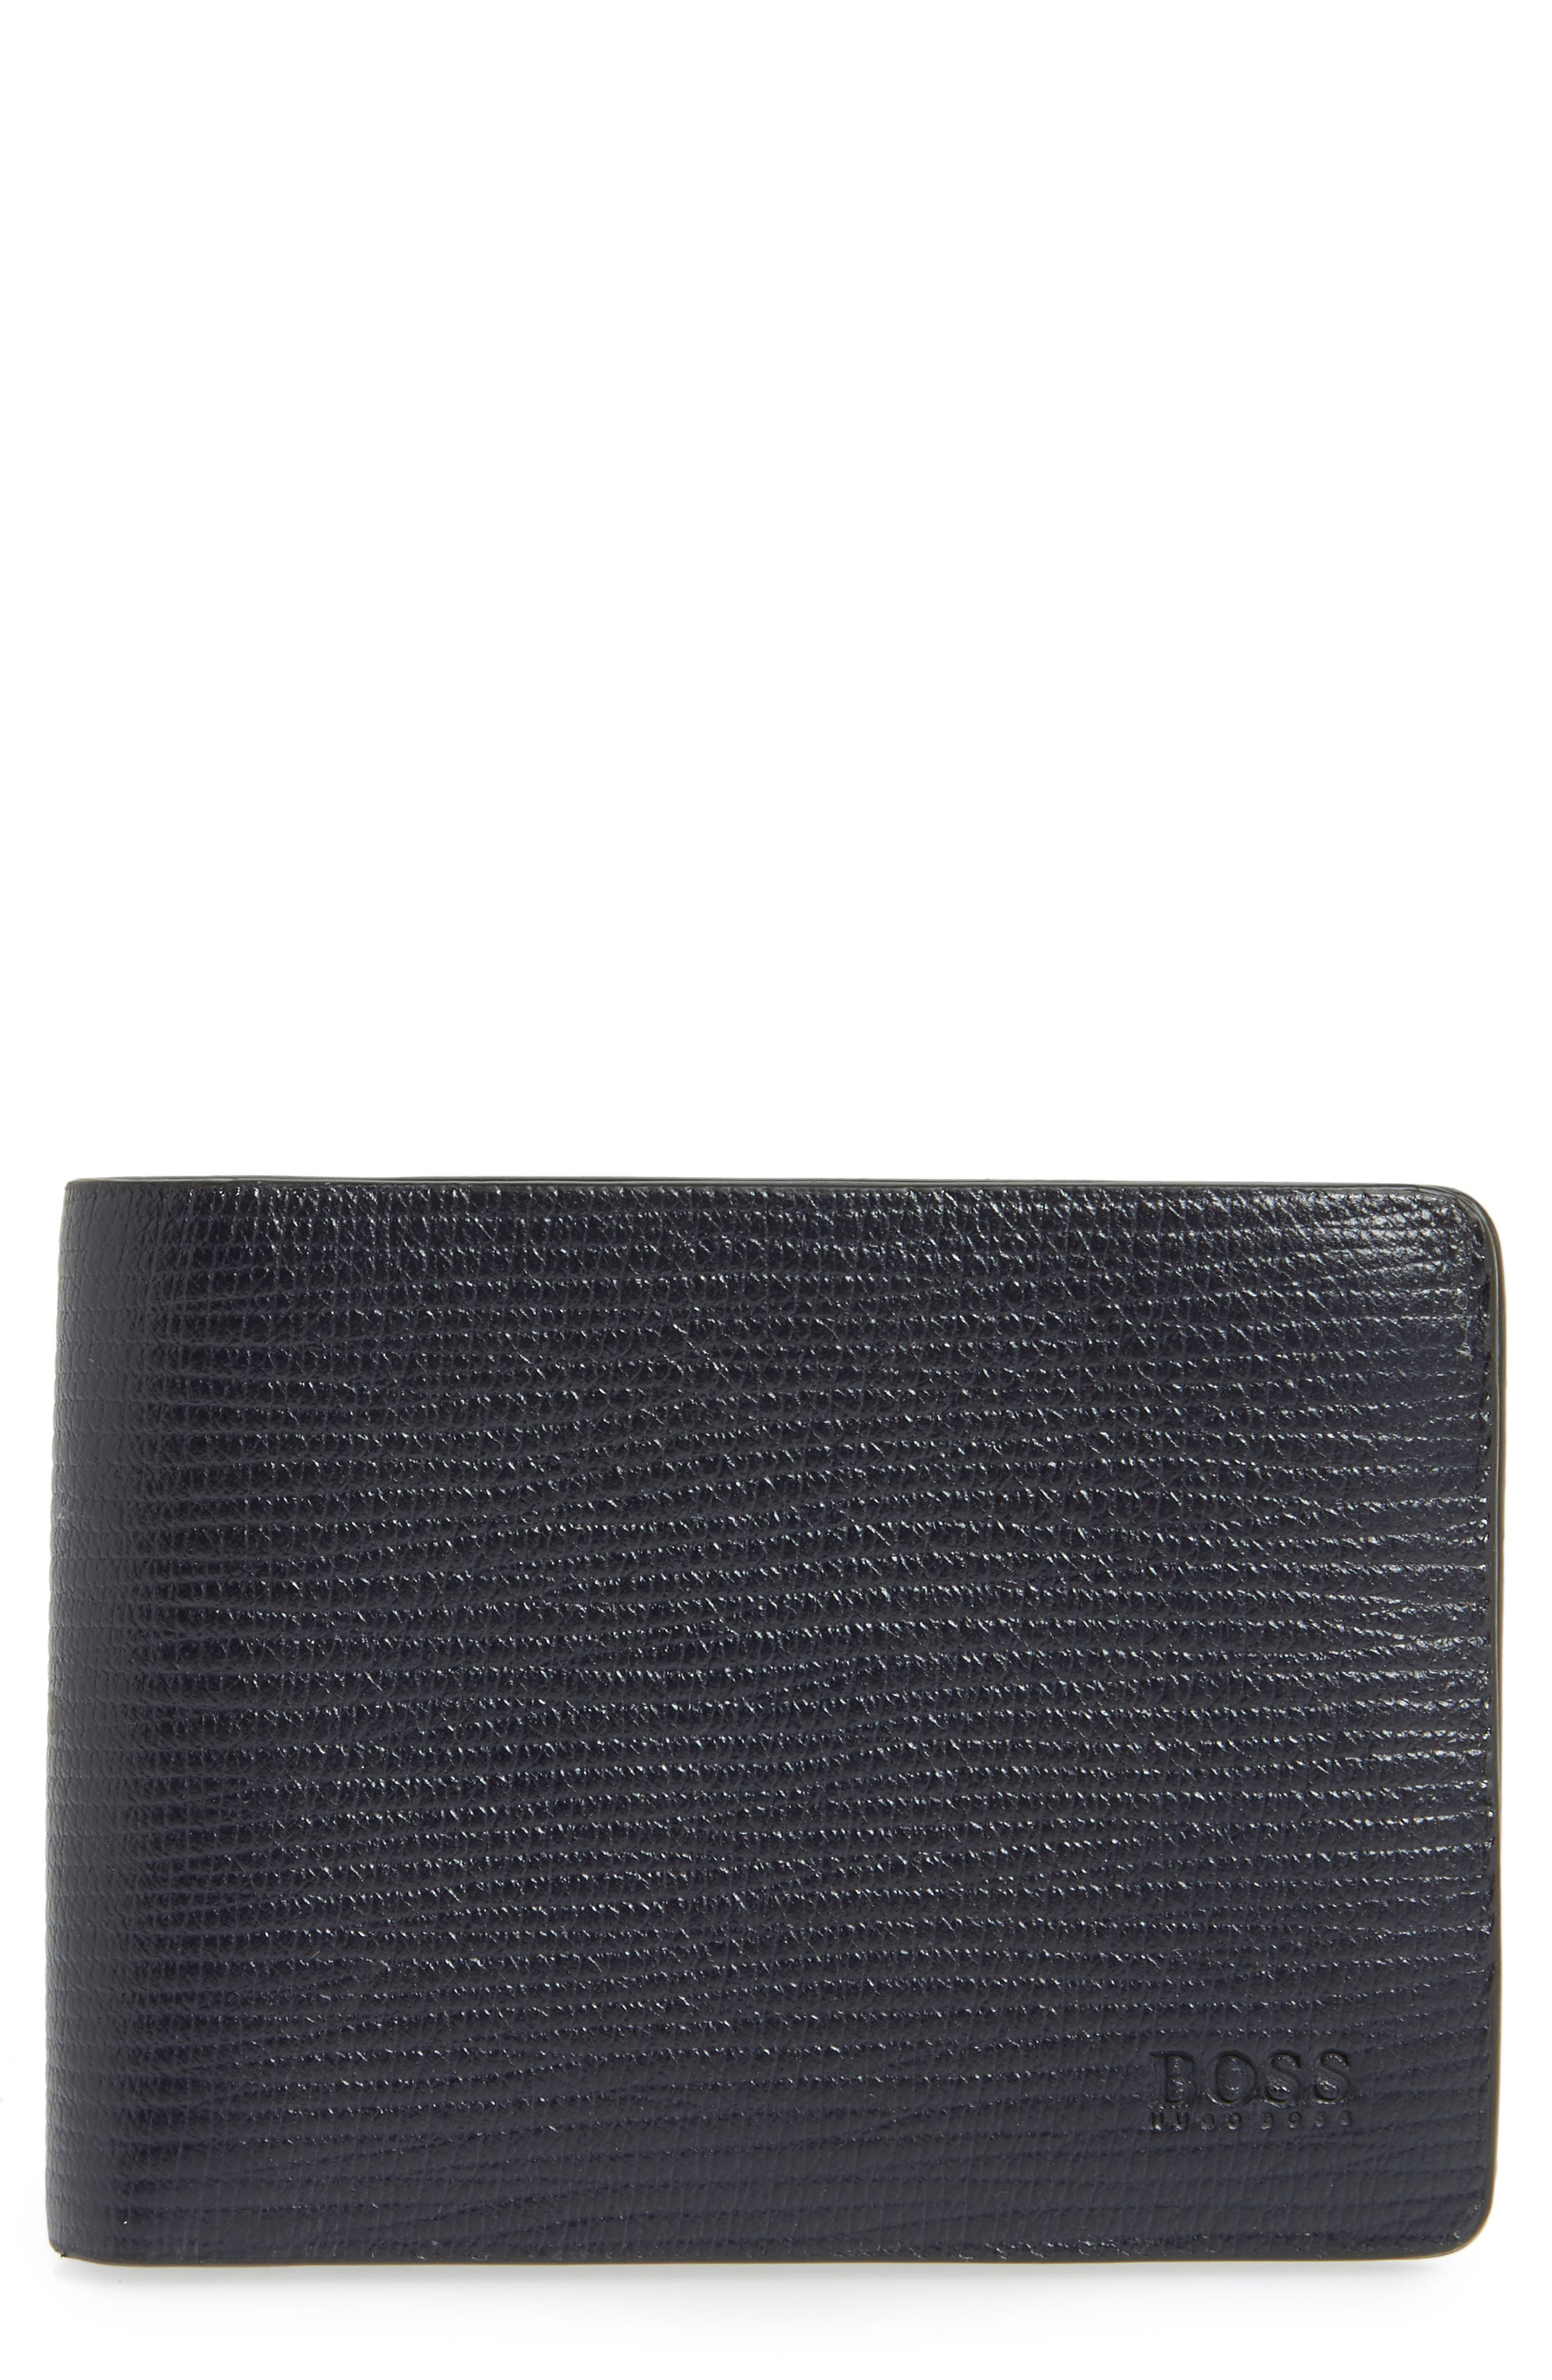 BOSS Timeless Leather Wallet